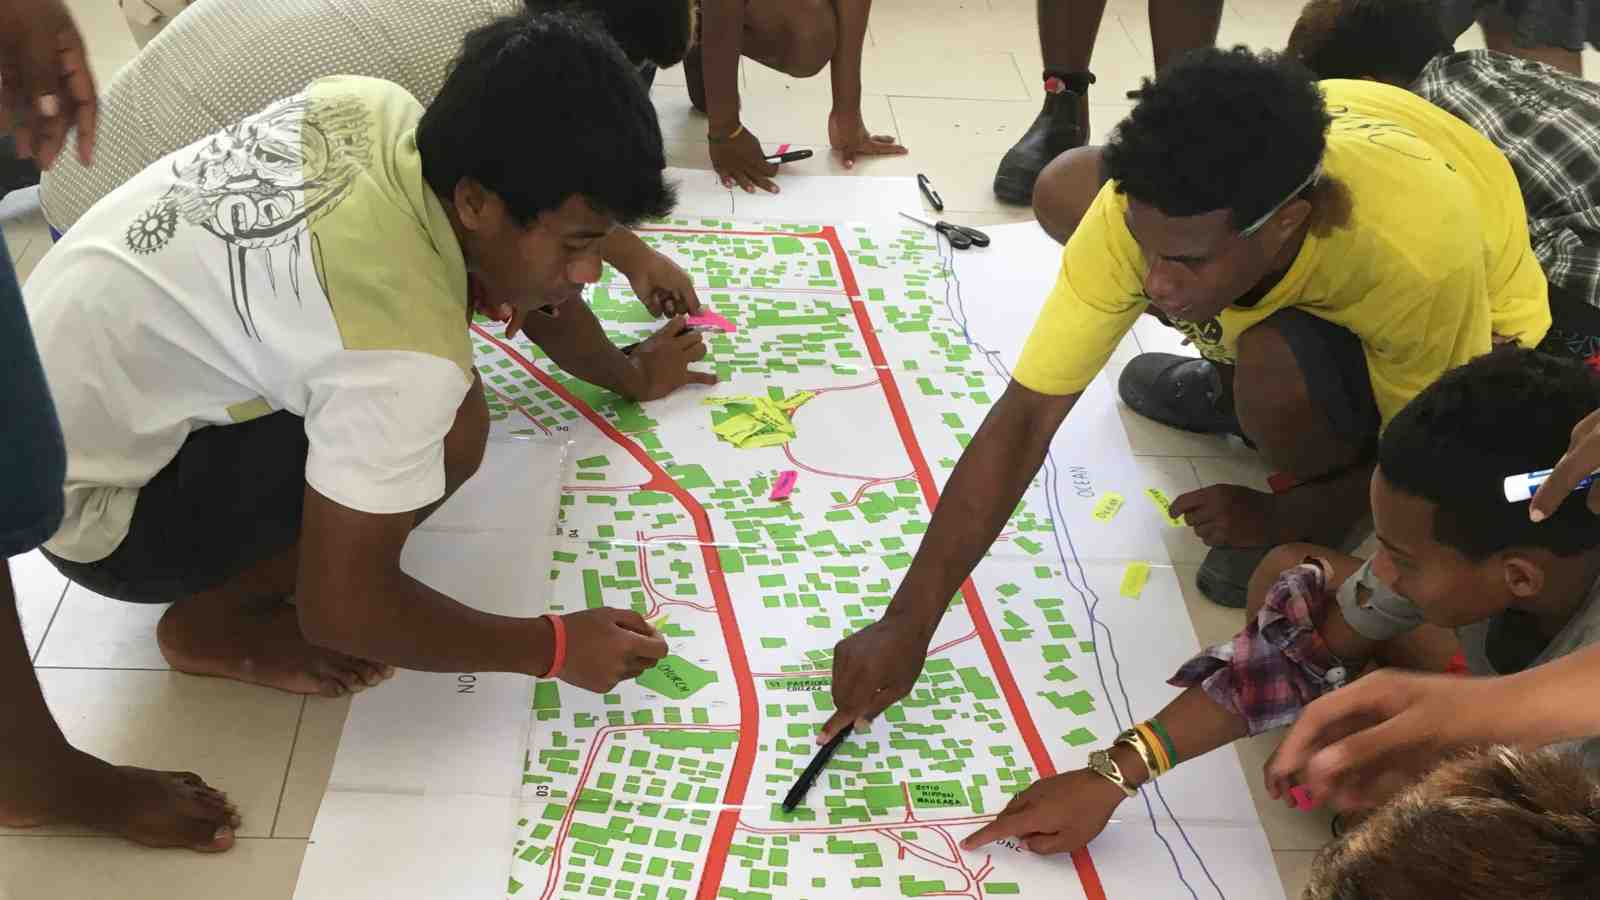 Members of Betio Youth, Kiribati, sit around an architectural drawing of their city, planning their new community centre.